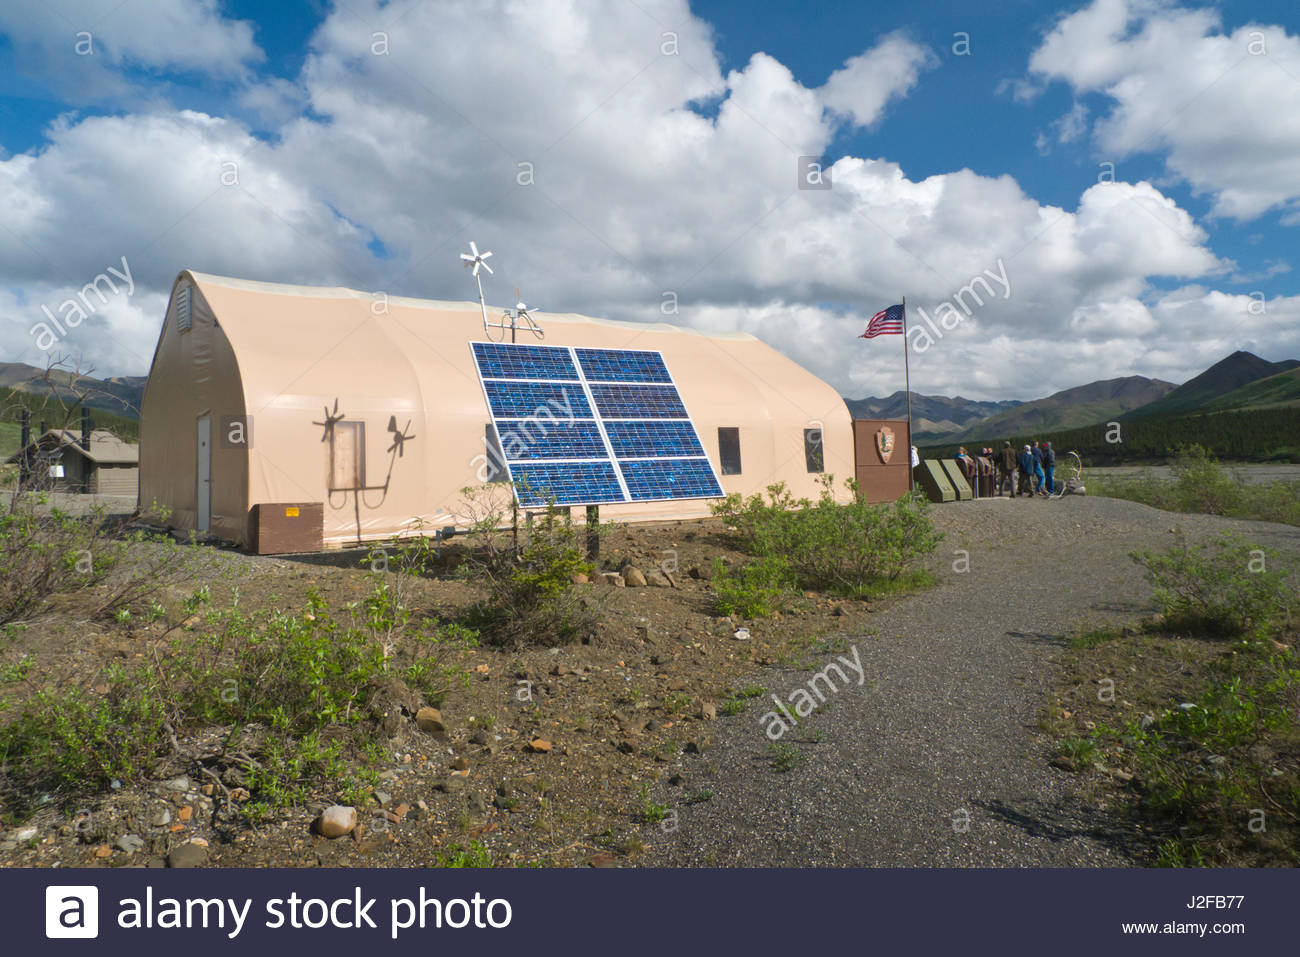 Photovoltaic panels providing electric power to fabric building at Toklat River rest area, Denali National Park, - Stock Image